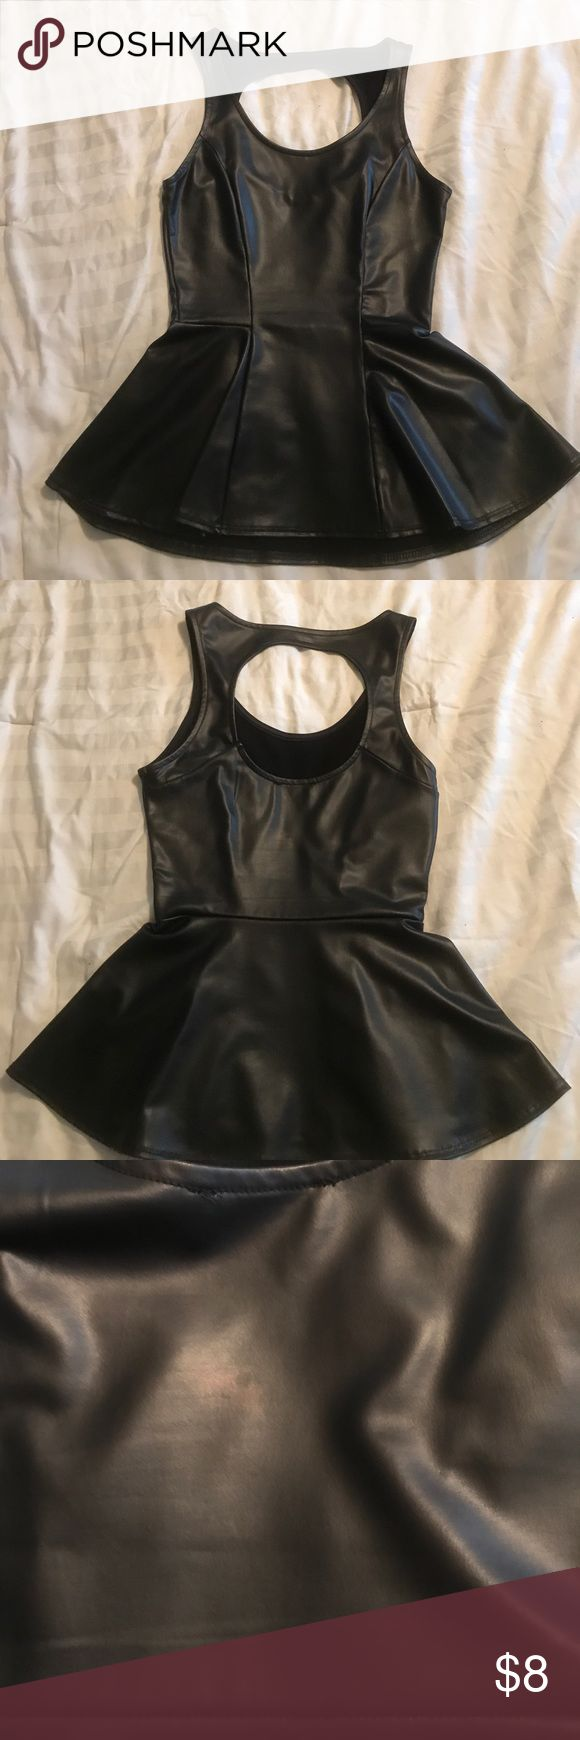 Kirra faux leather peplum top! Good condition! Kirra faux learn peplum top! Slight discoloration on the back when under bright light but is not very visible otherwise. Only worn once! Size: XS Kirra Tops Tank Tops